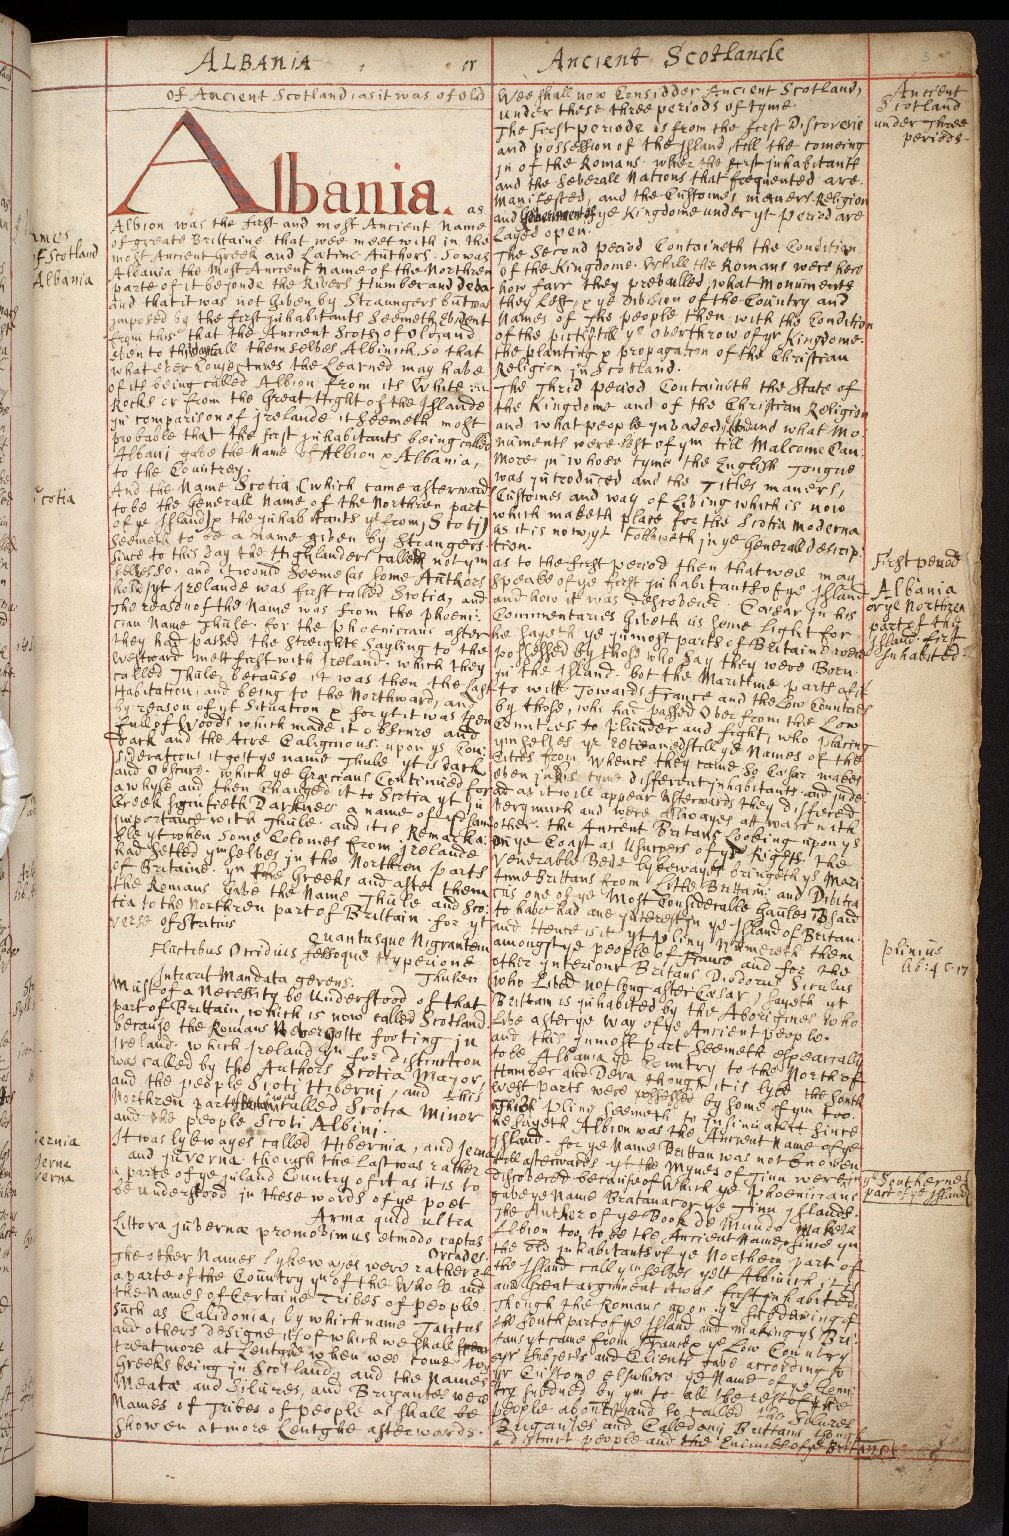 Atlas Scoticus, or a Description of Scotland Ancient and Modern. [004 of 259]